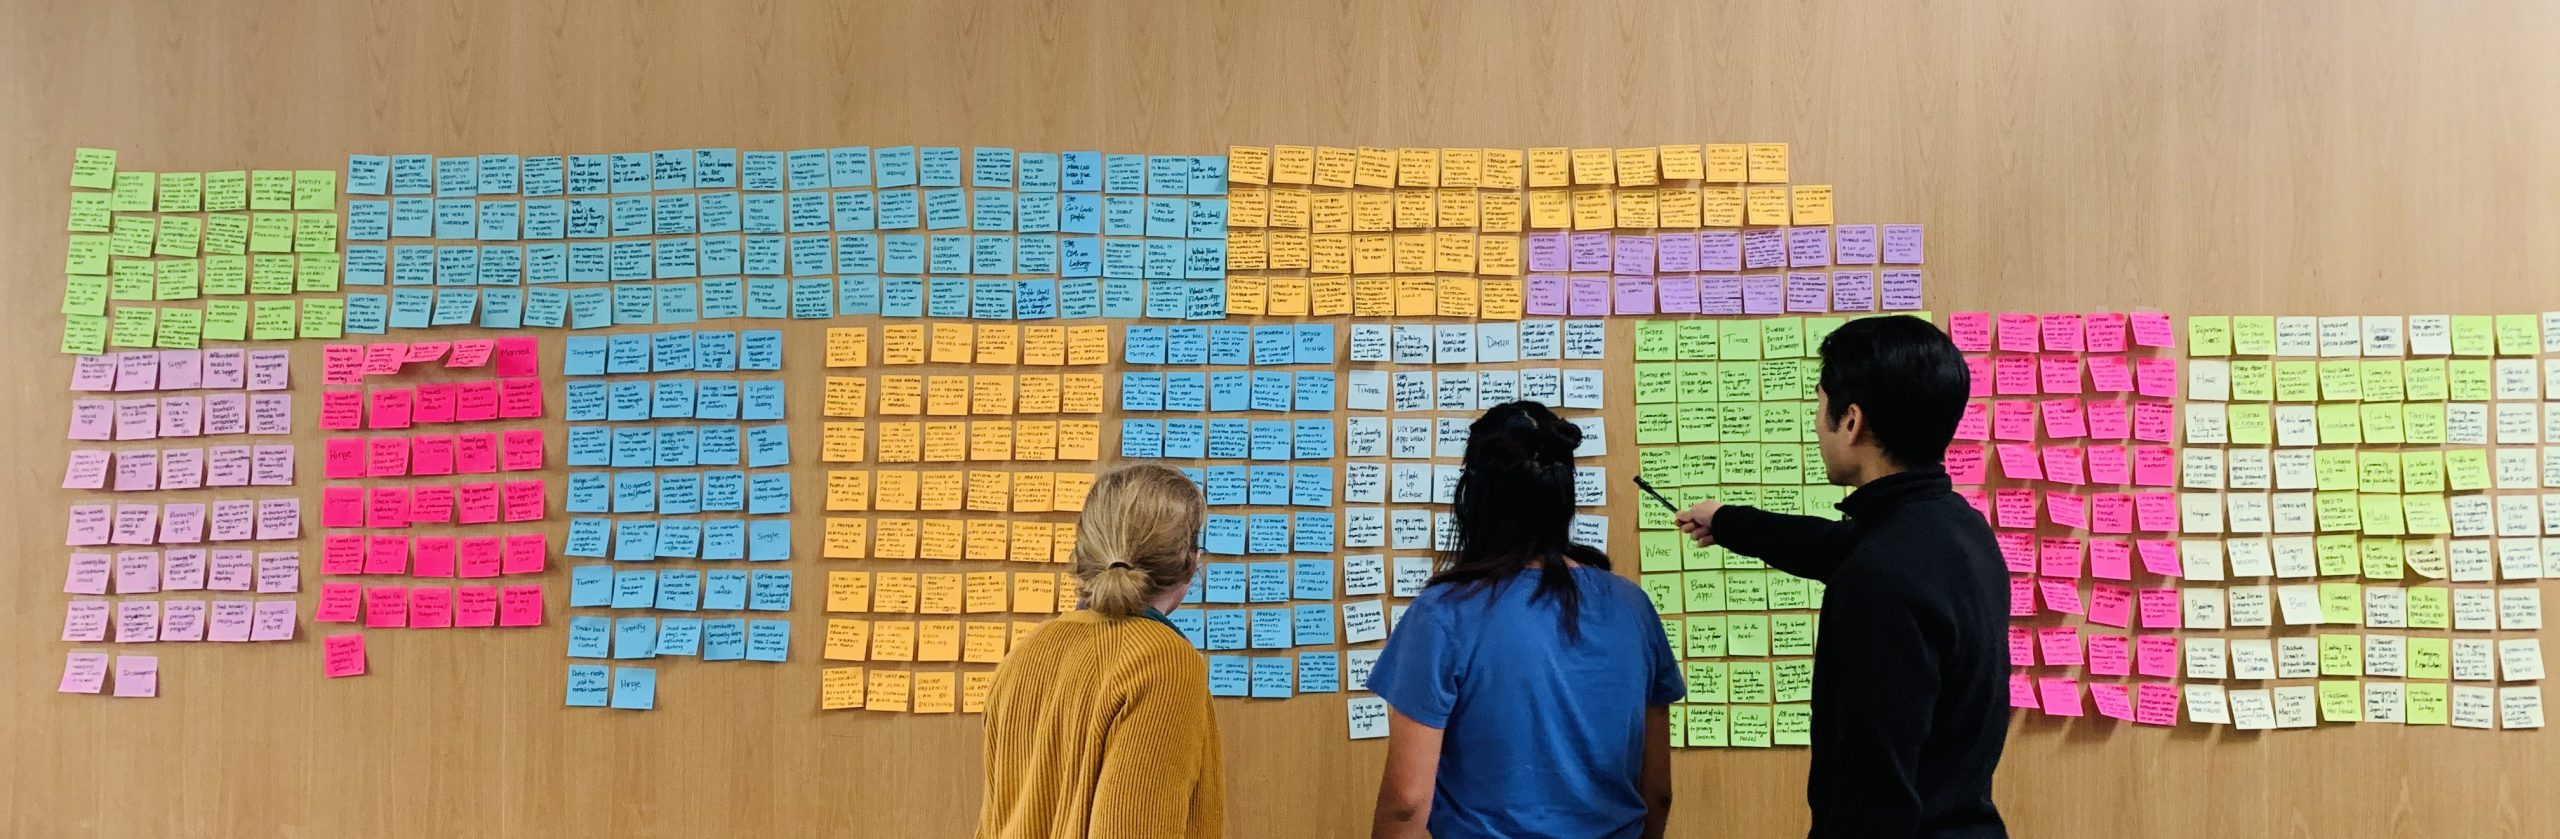 Affinity-Mapping